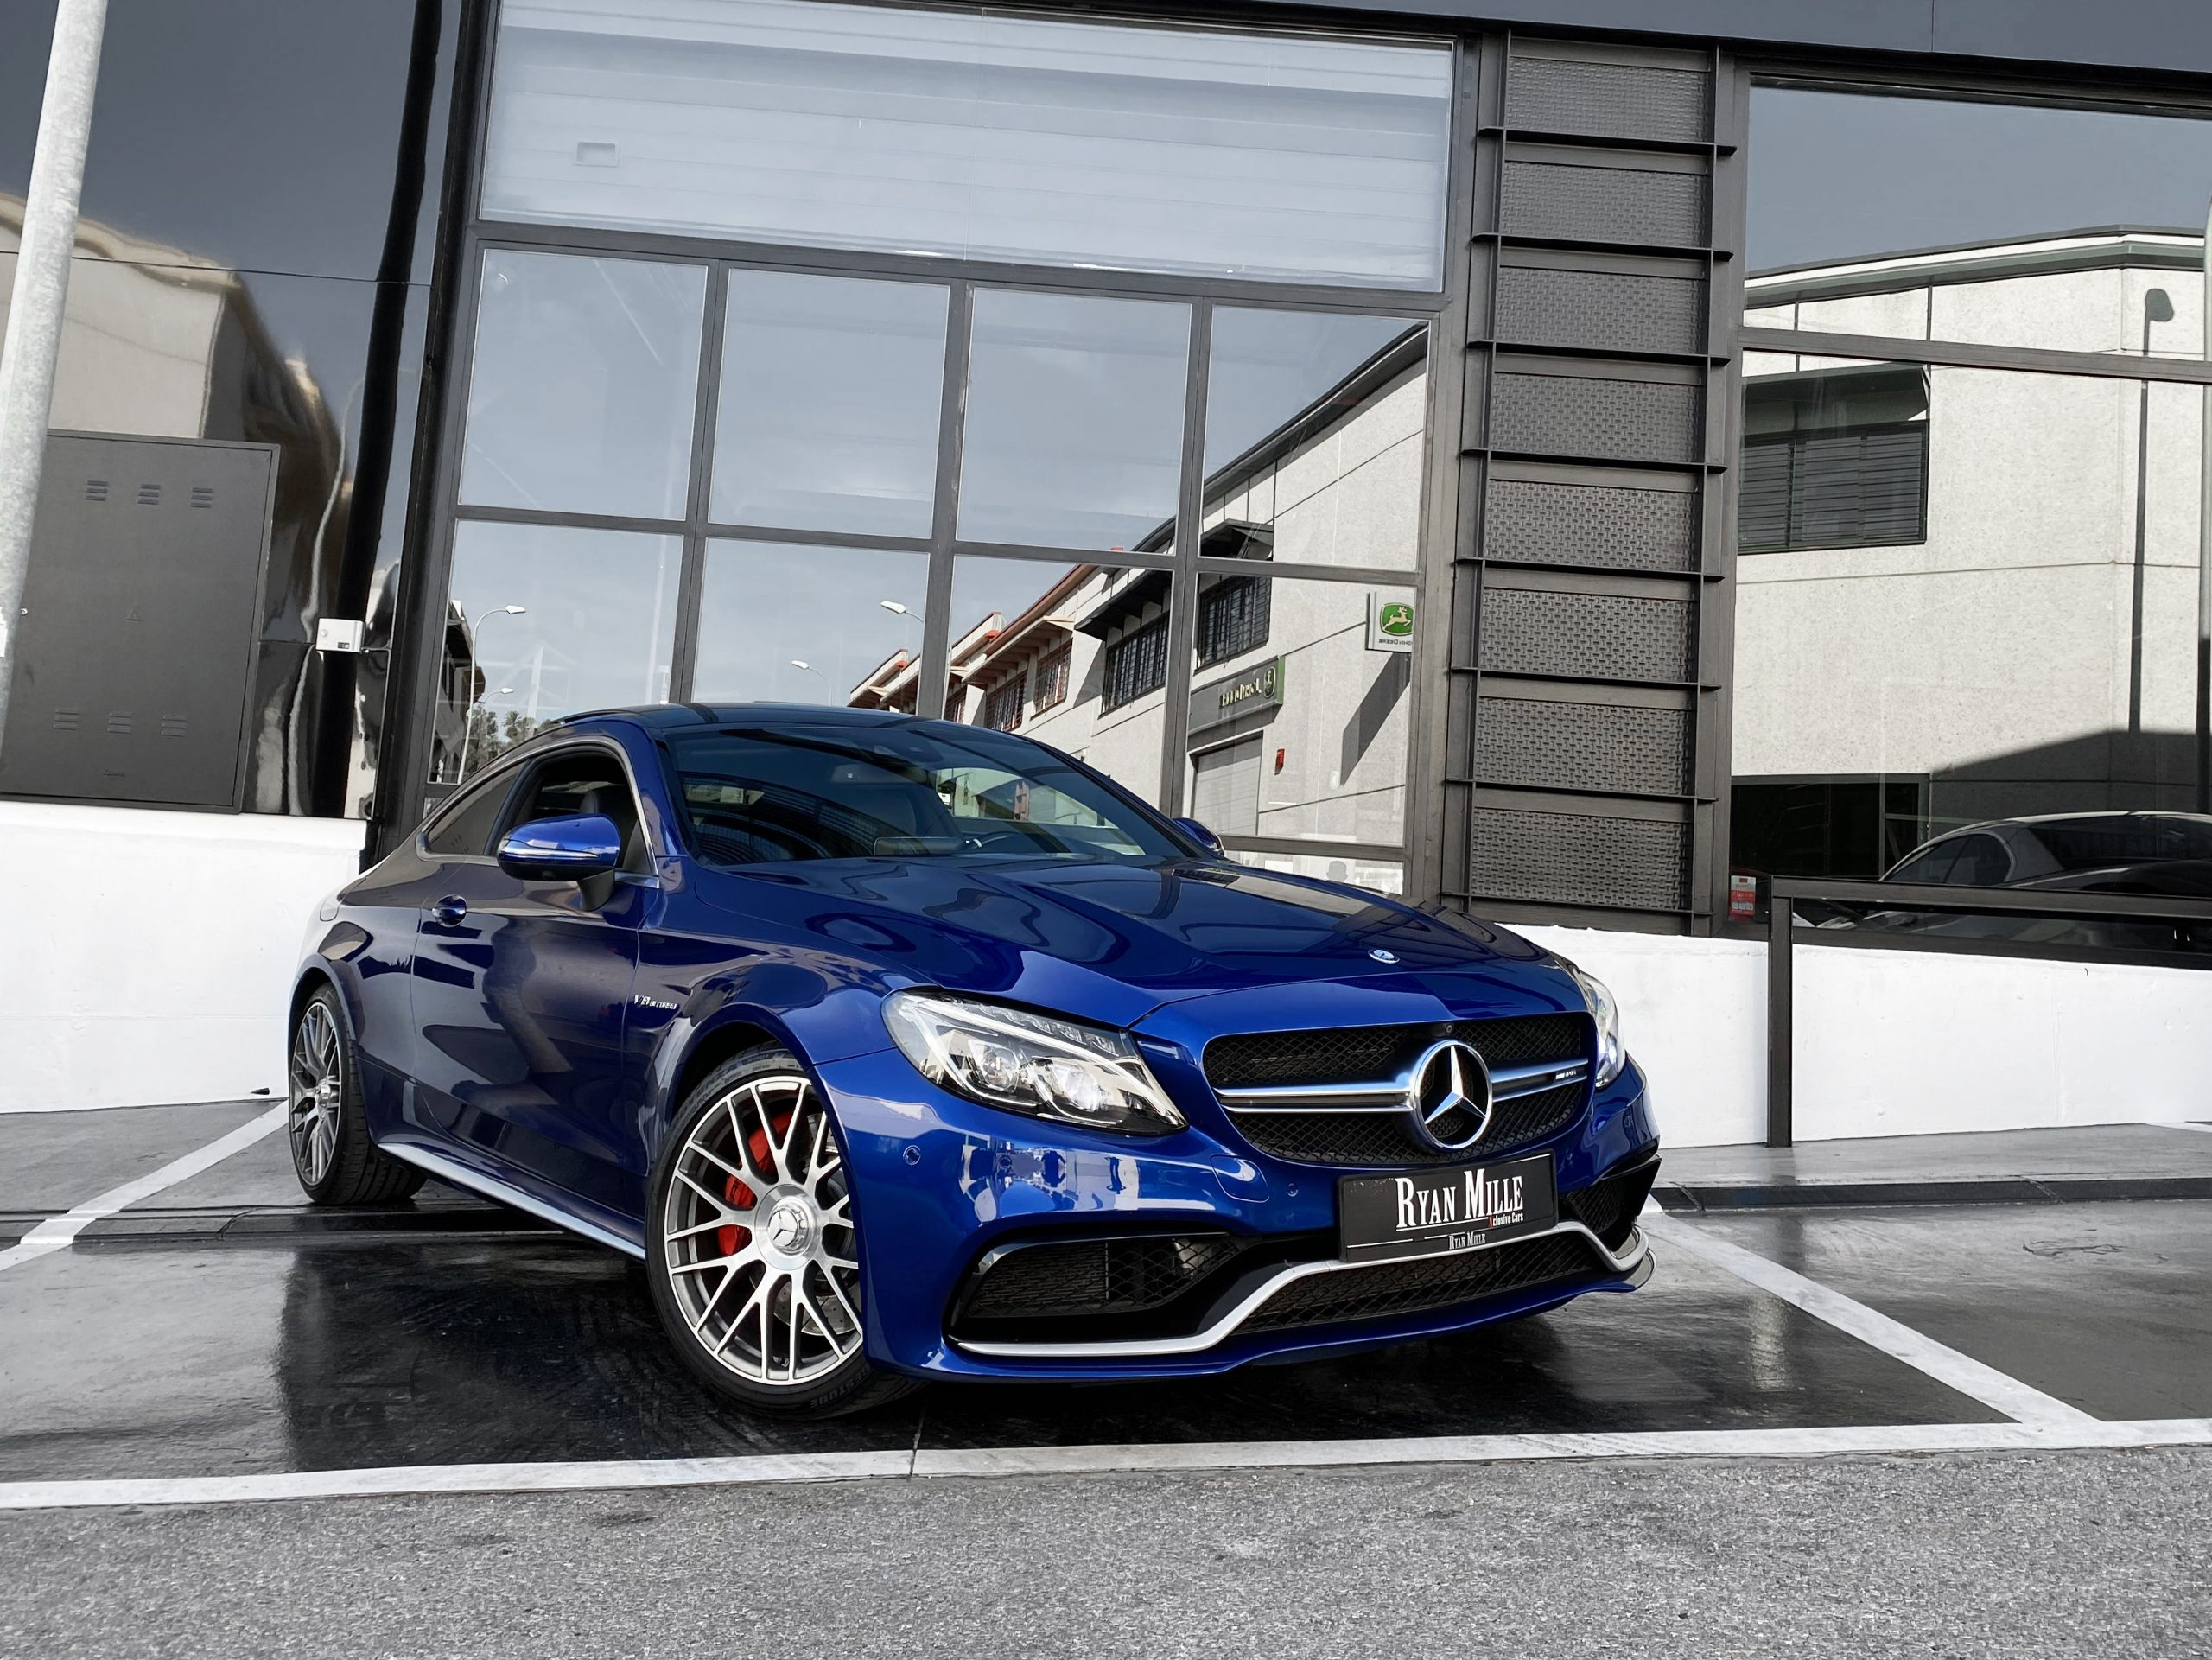 Mercedes Benz C63s Amg Coupe Ryan Mille Xclusive Cars